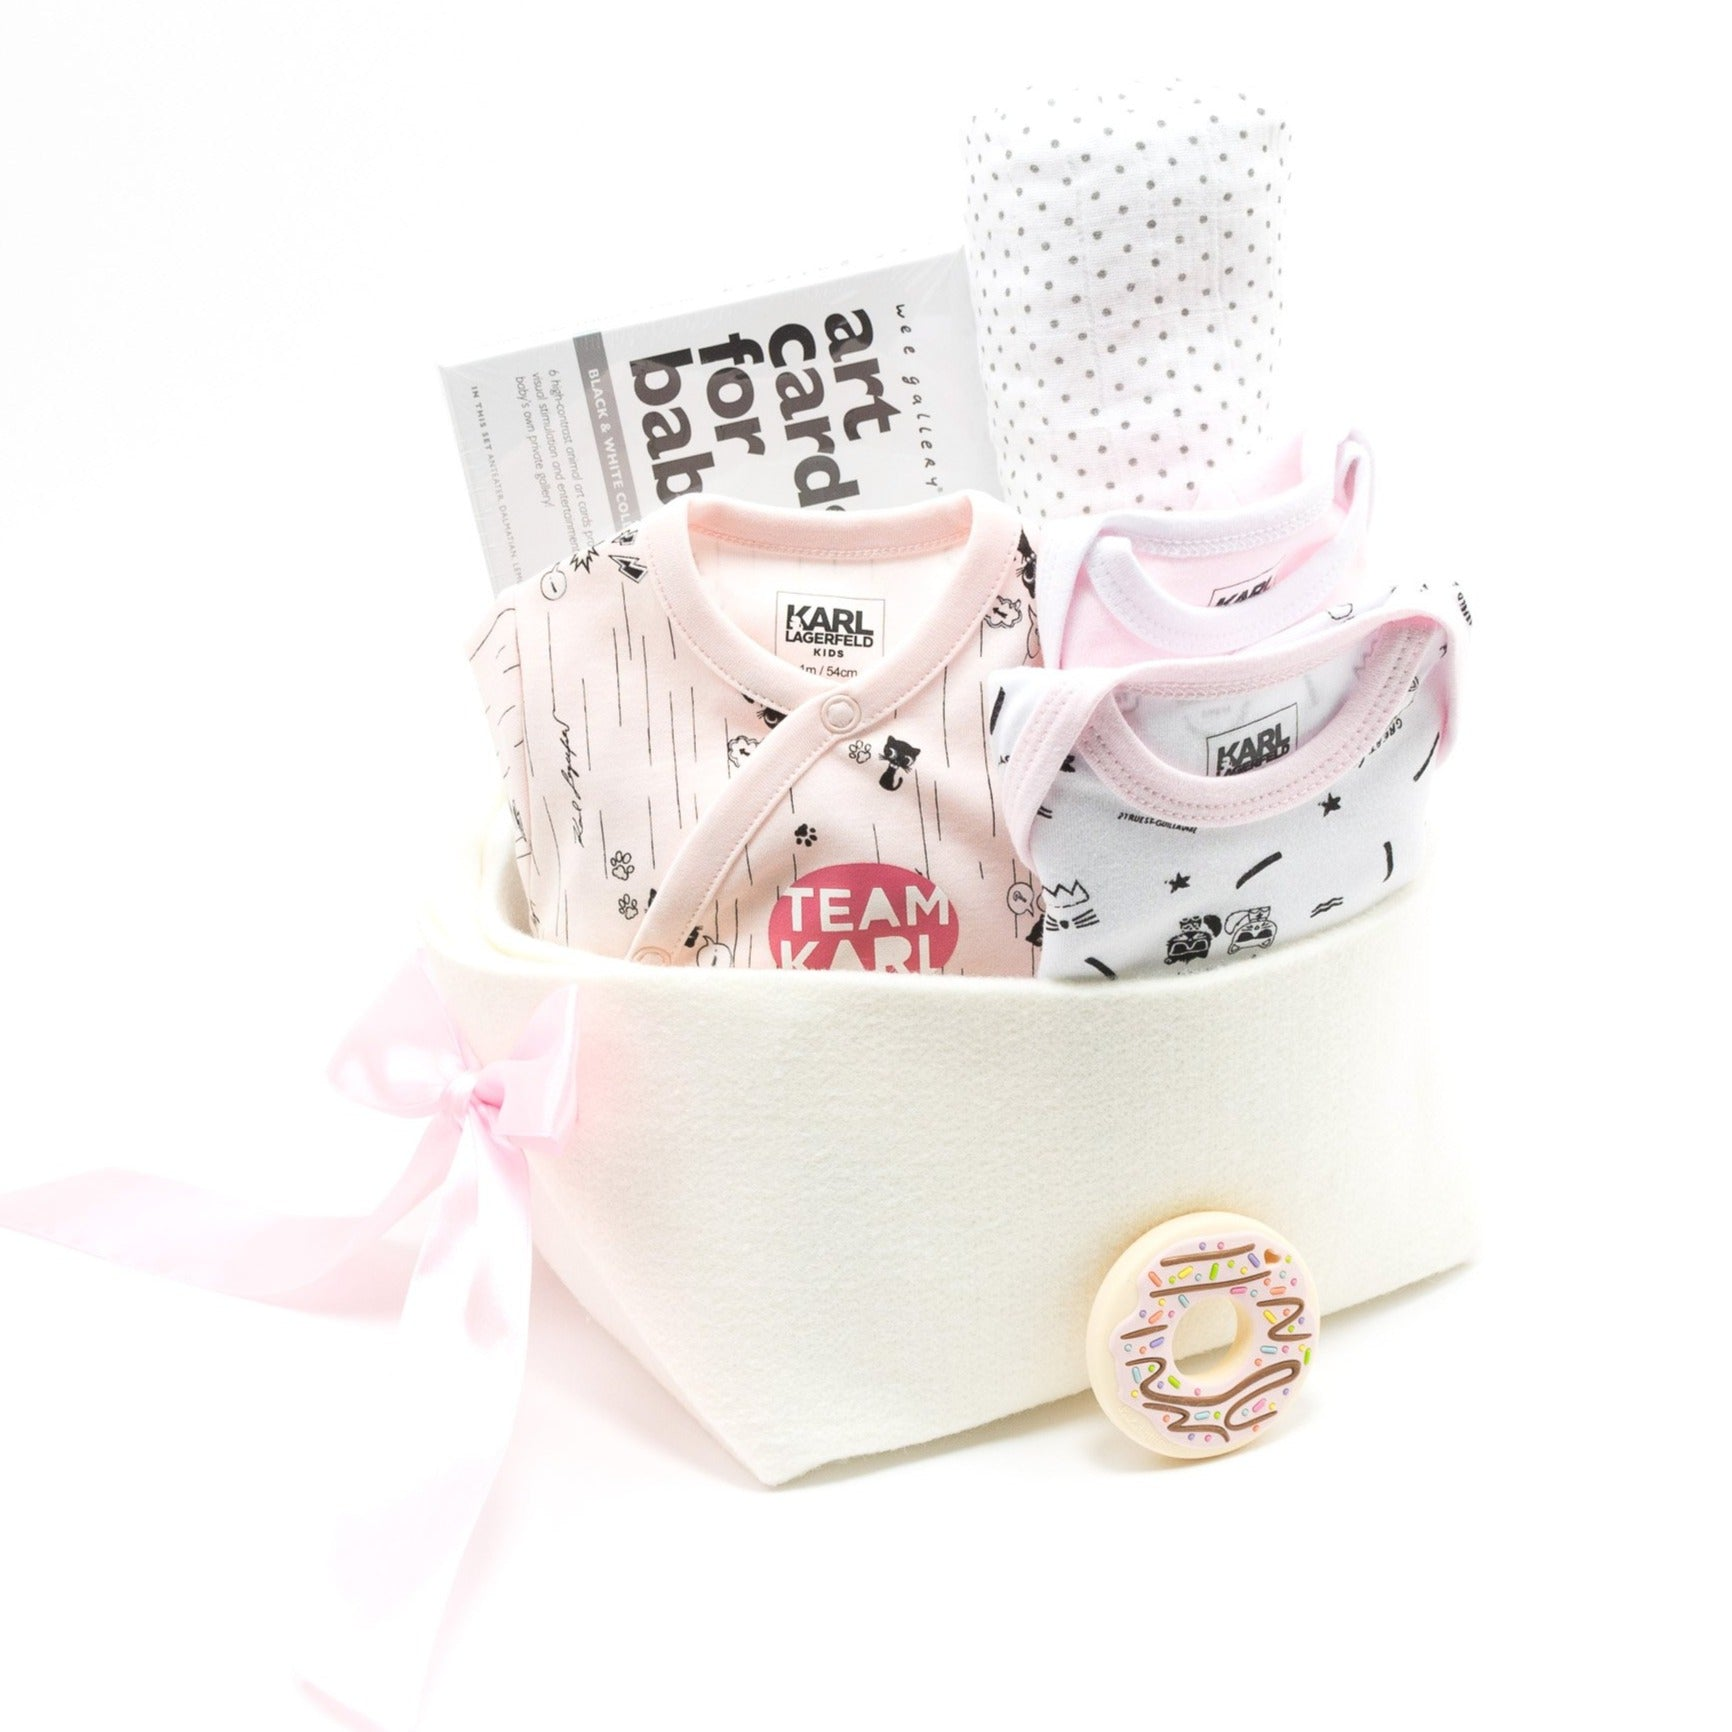 KARL LAGERFELD Kids Baby Boy Gift Basket, perfect Corporate Baby Gift